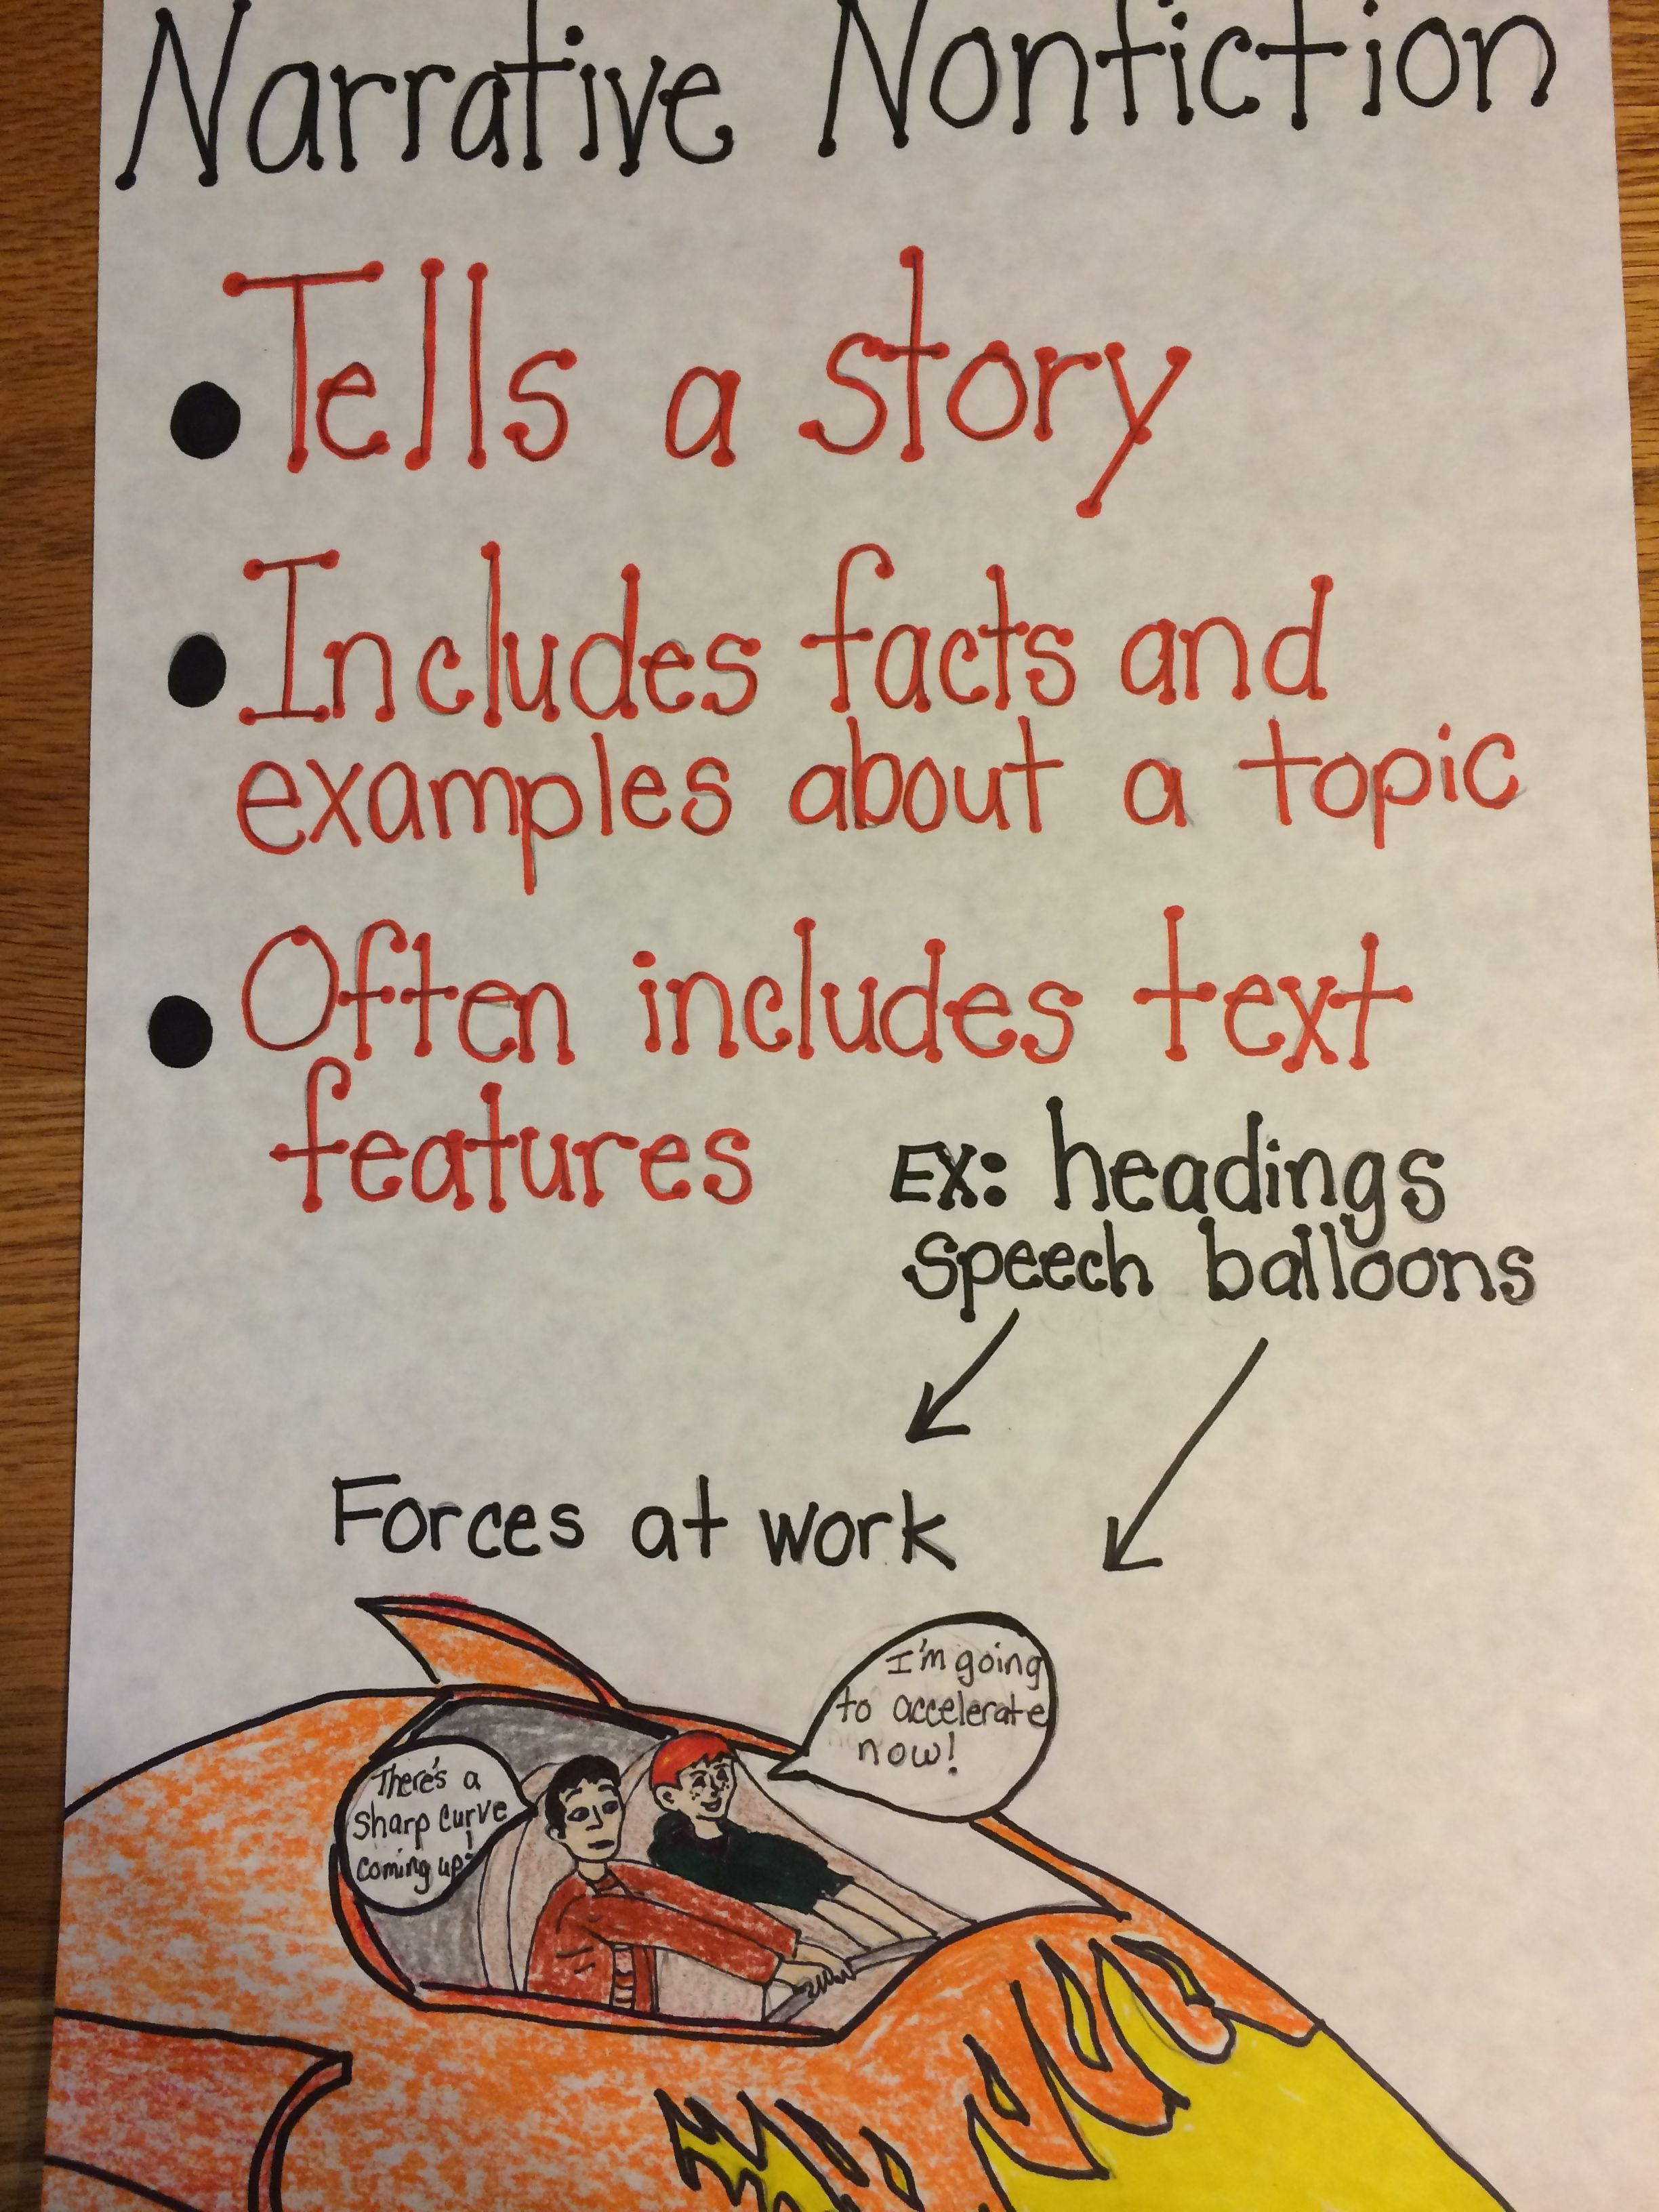 Narrative Nonfiction Anchor Chart   school   Pinterest   Anchor     Narrative Nonfiction Anchor Chart